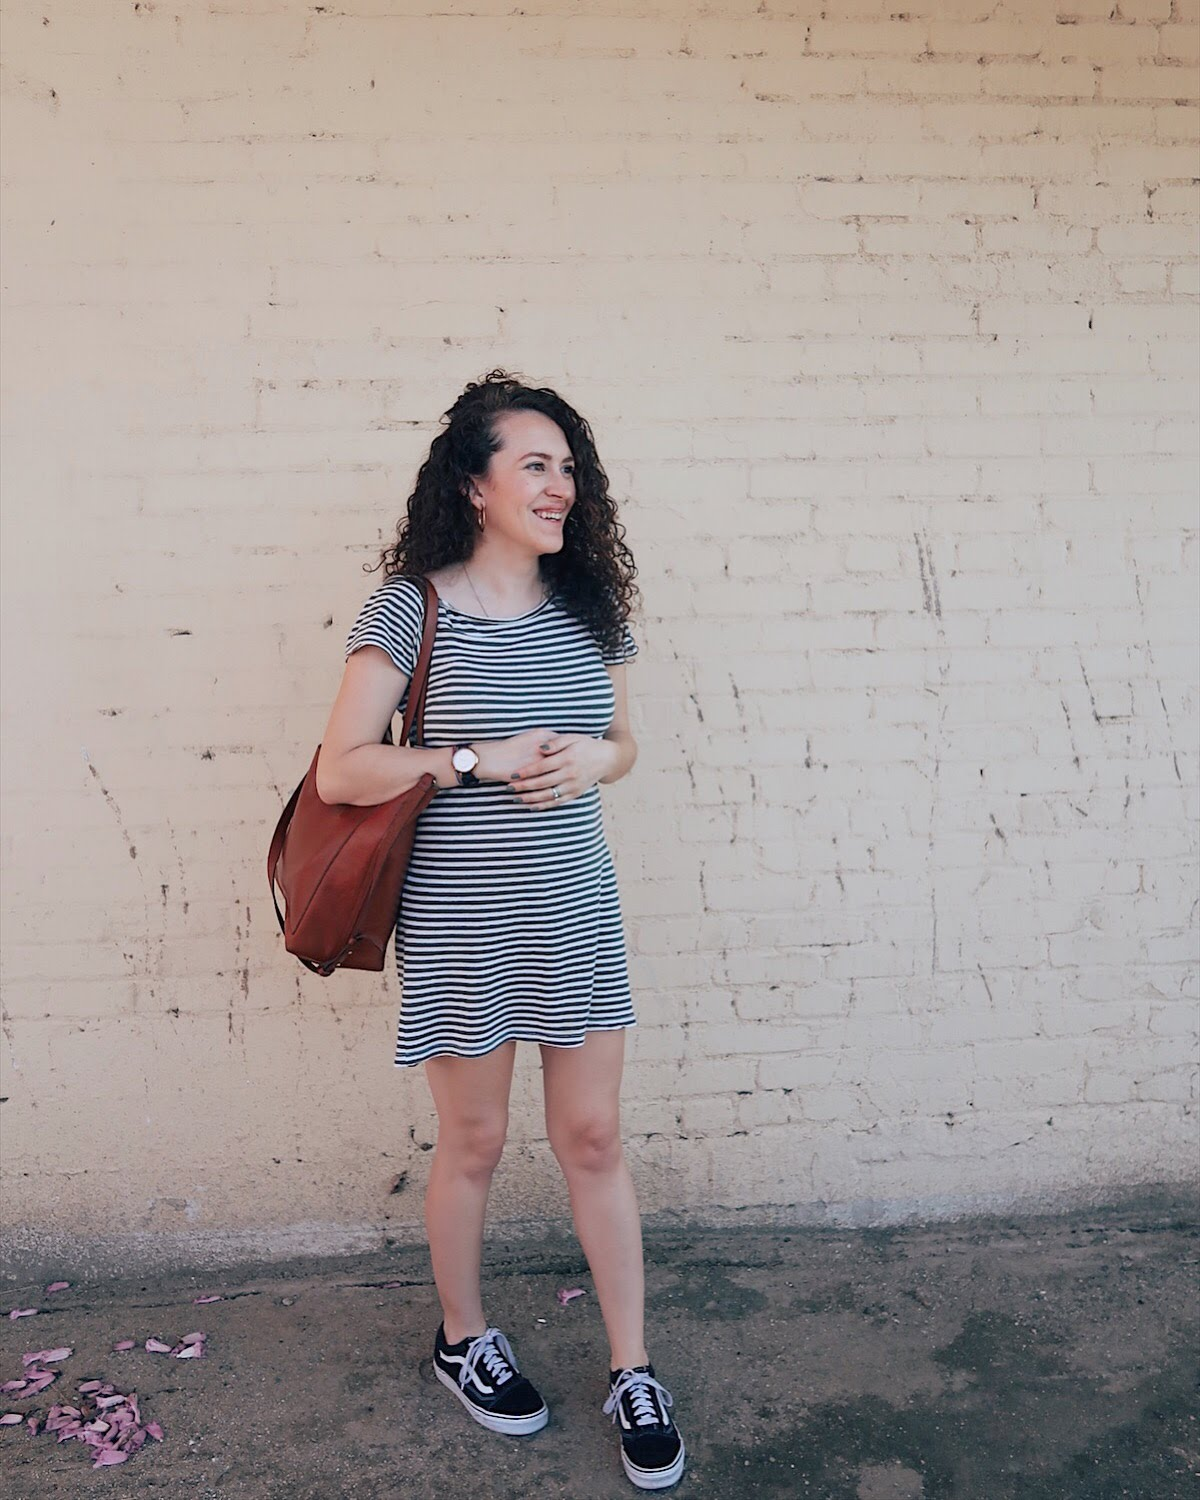 simple style: a striped t shirt dress with vans and a good bag is easy for travel and comfortable enough for a baby bump